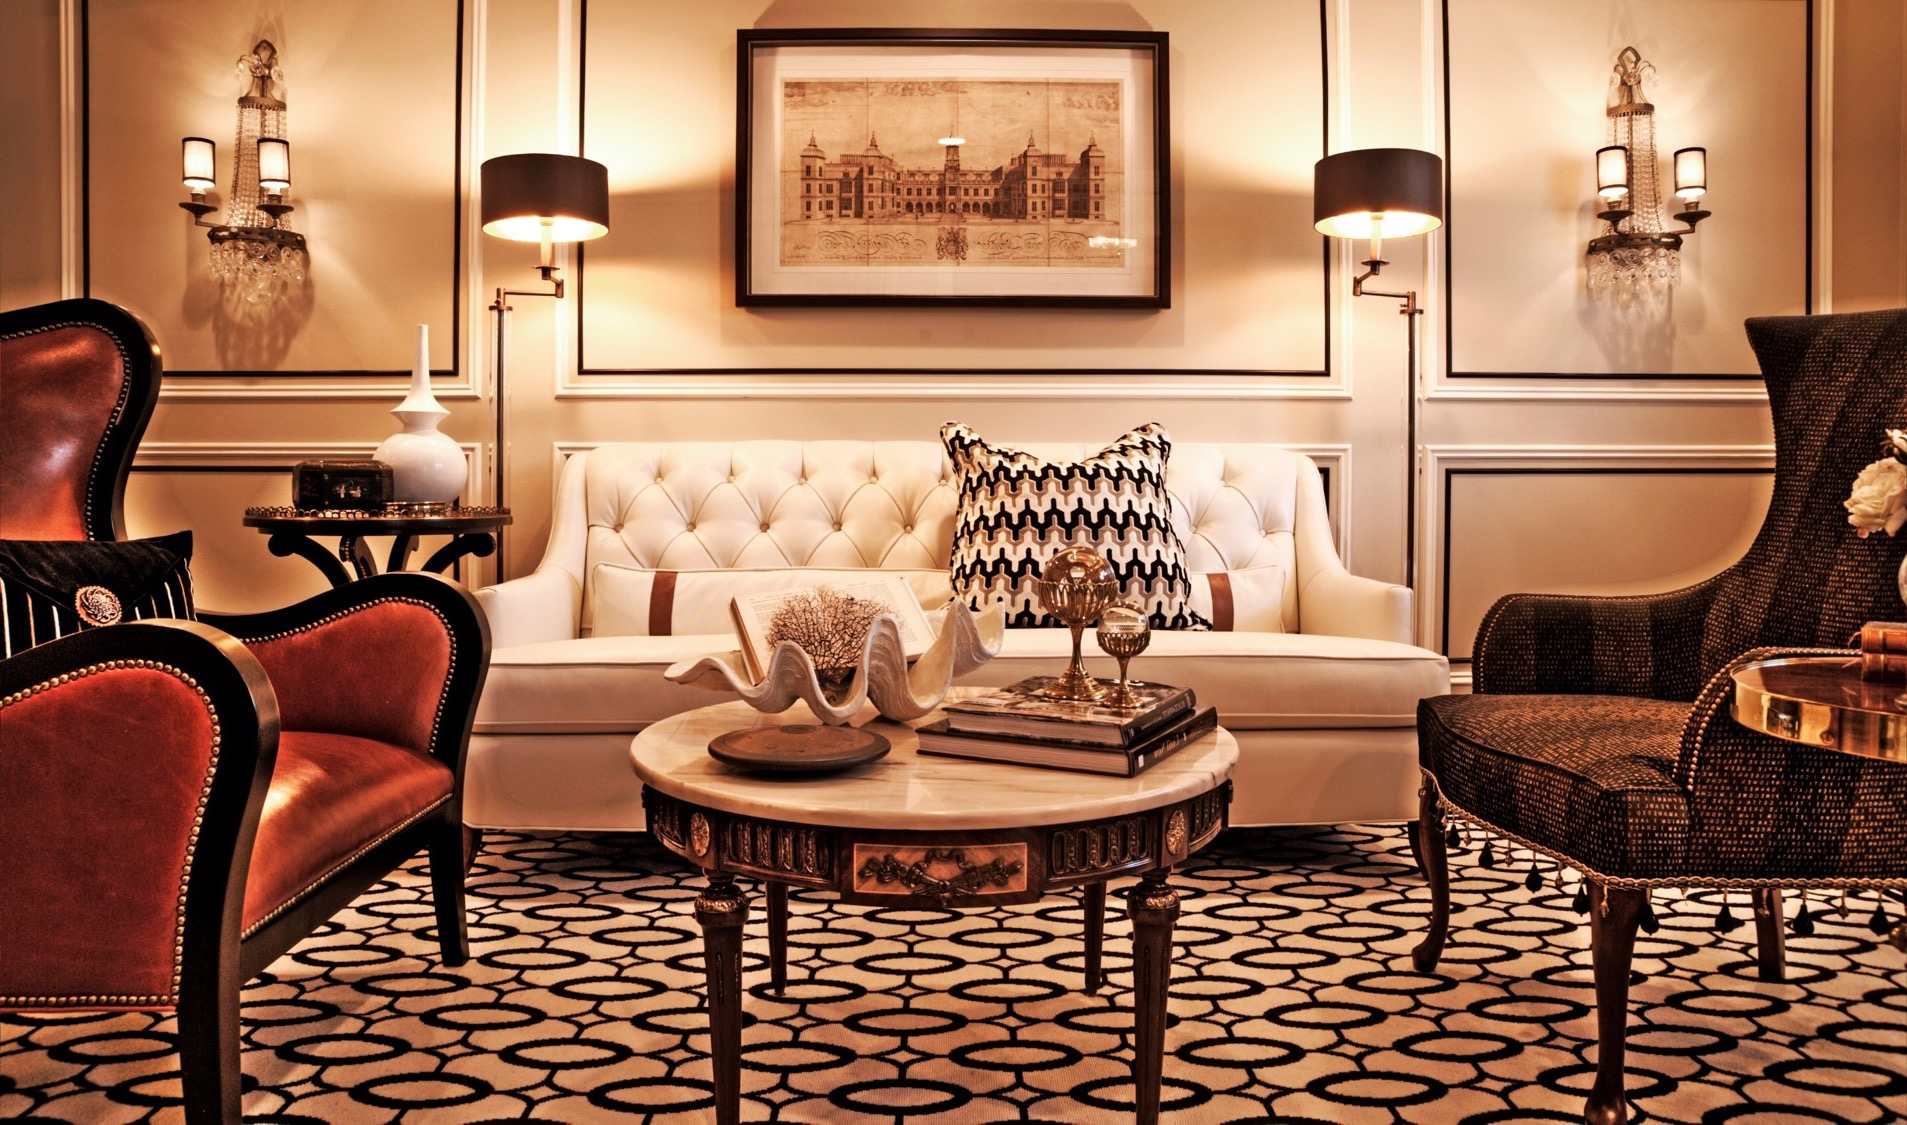 Glamorous Art Deco Living Room With Tufted White Sofa (Image 12 Of 20)